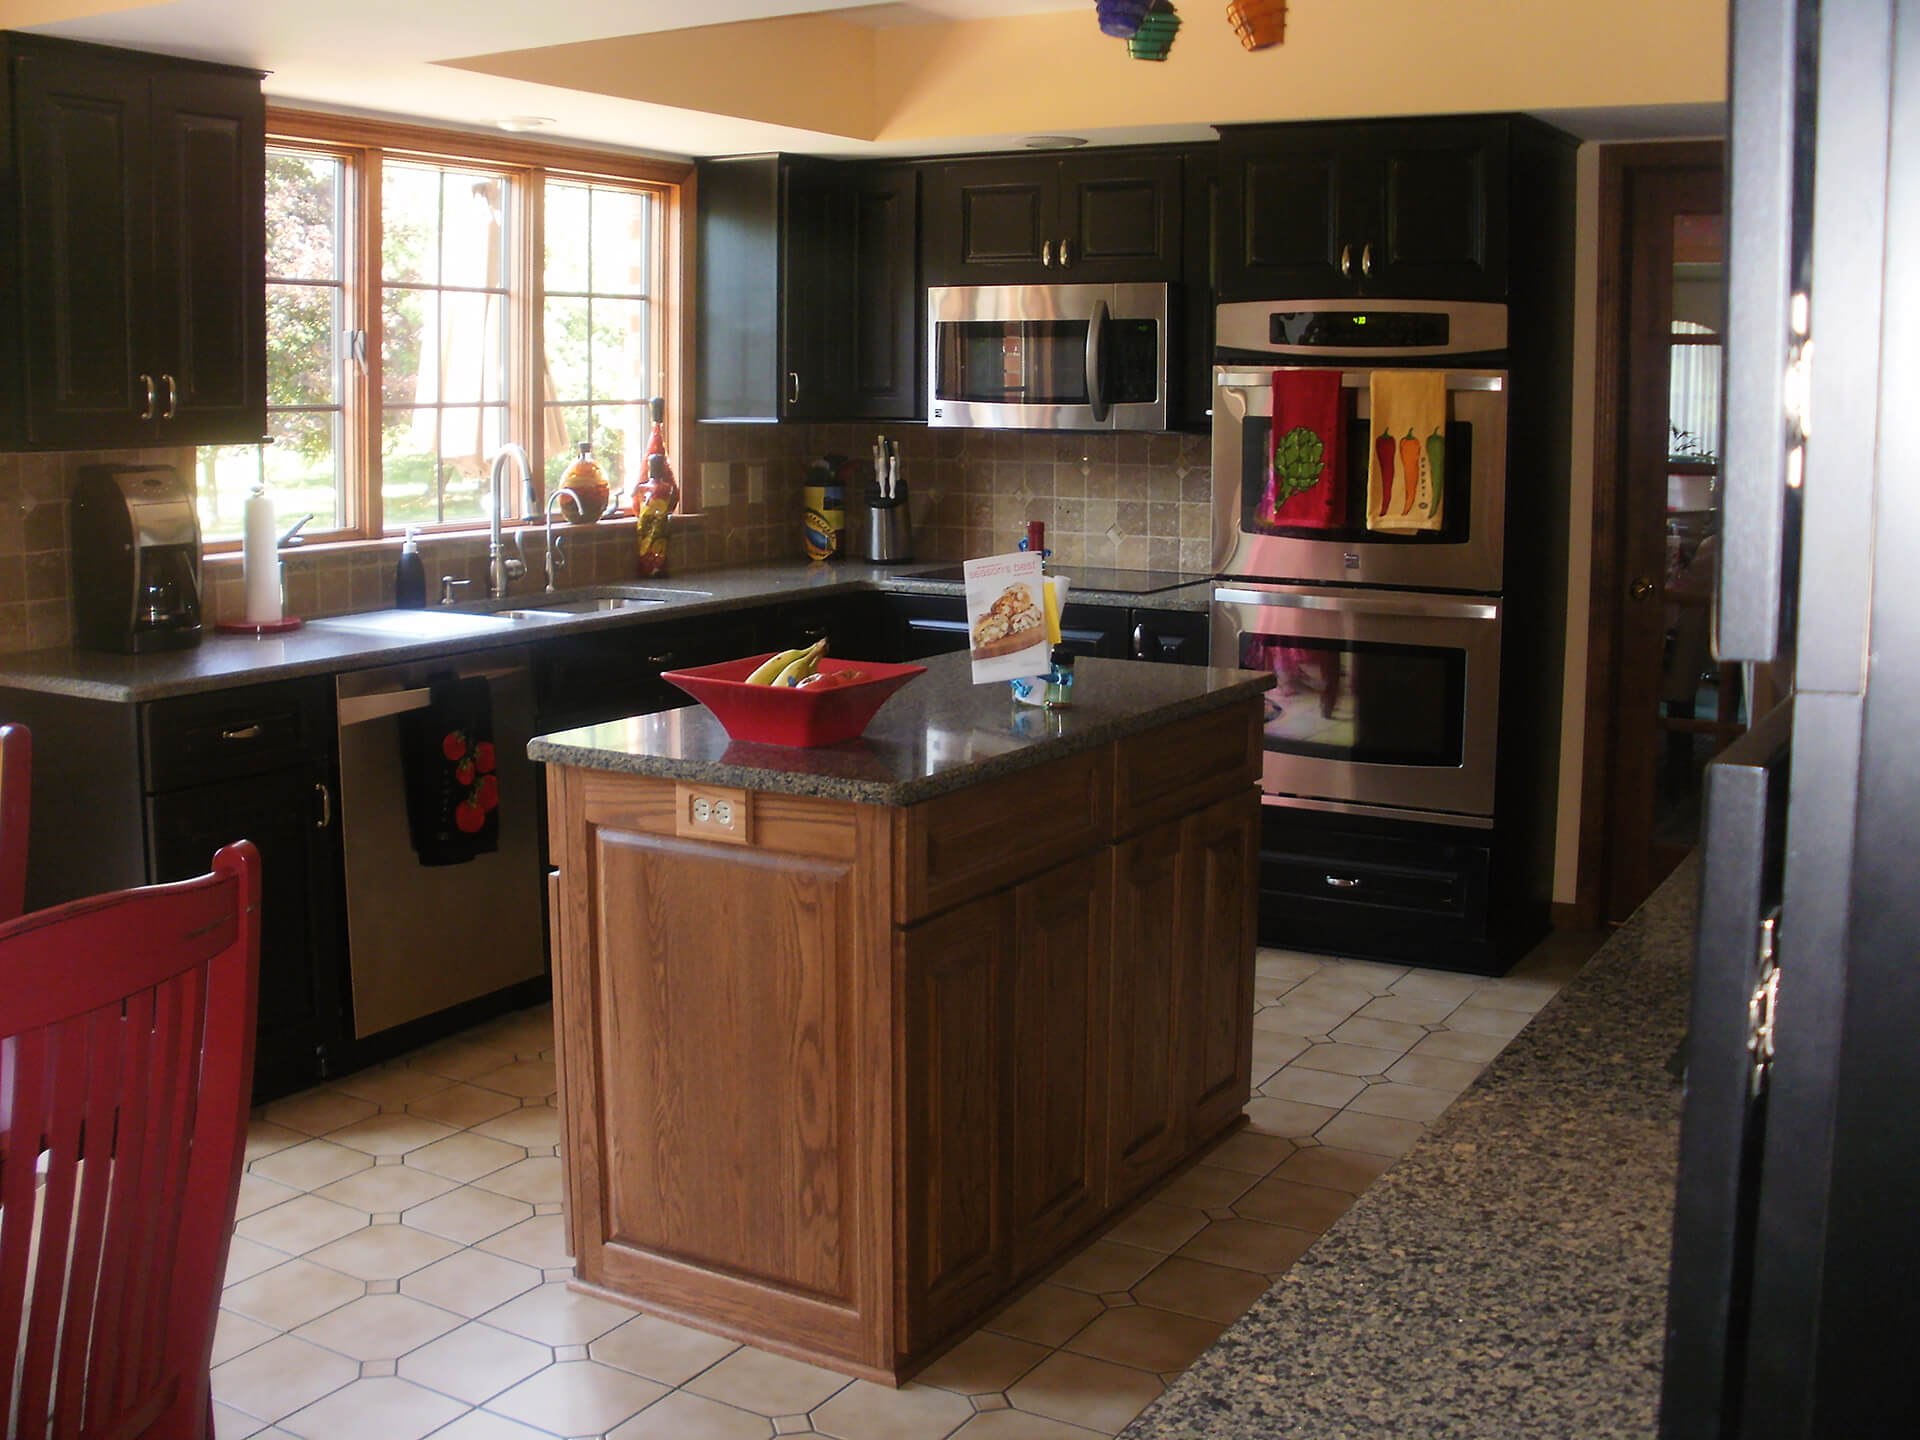 remodel works bath & kitchen farmhouse islands kinetic and gallery photo 2